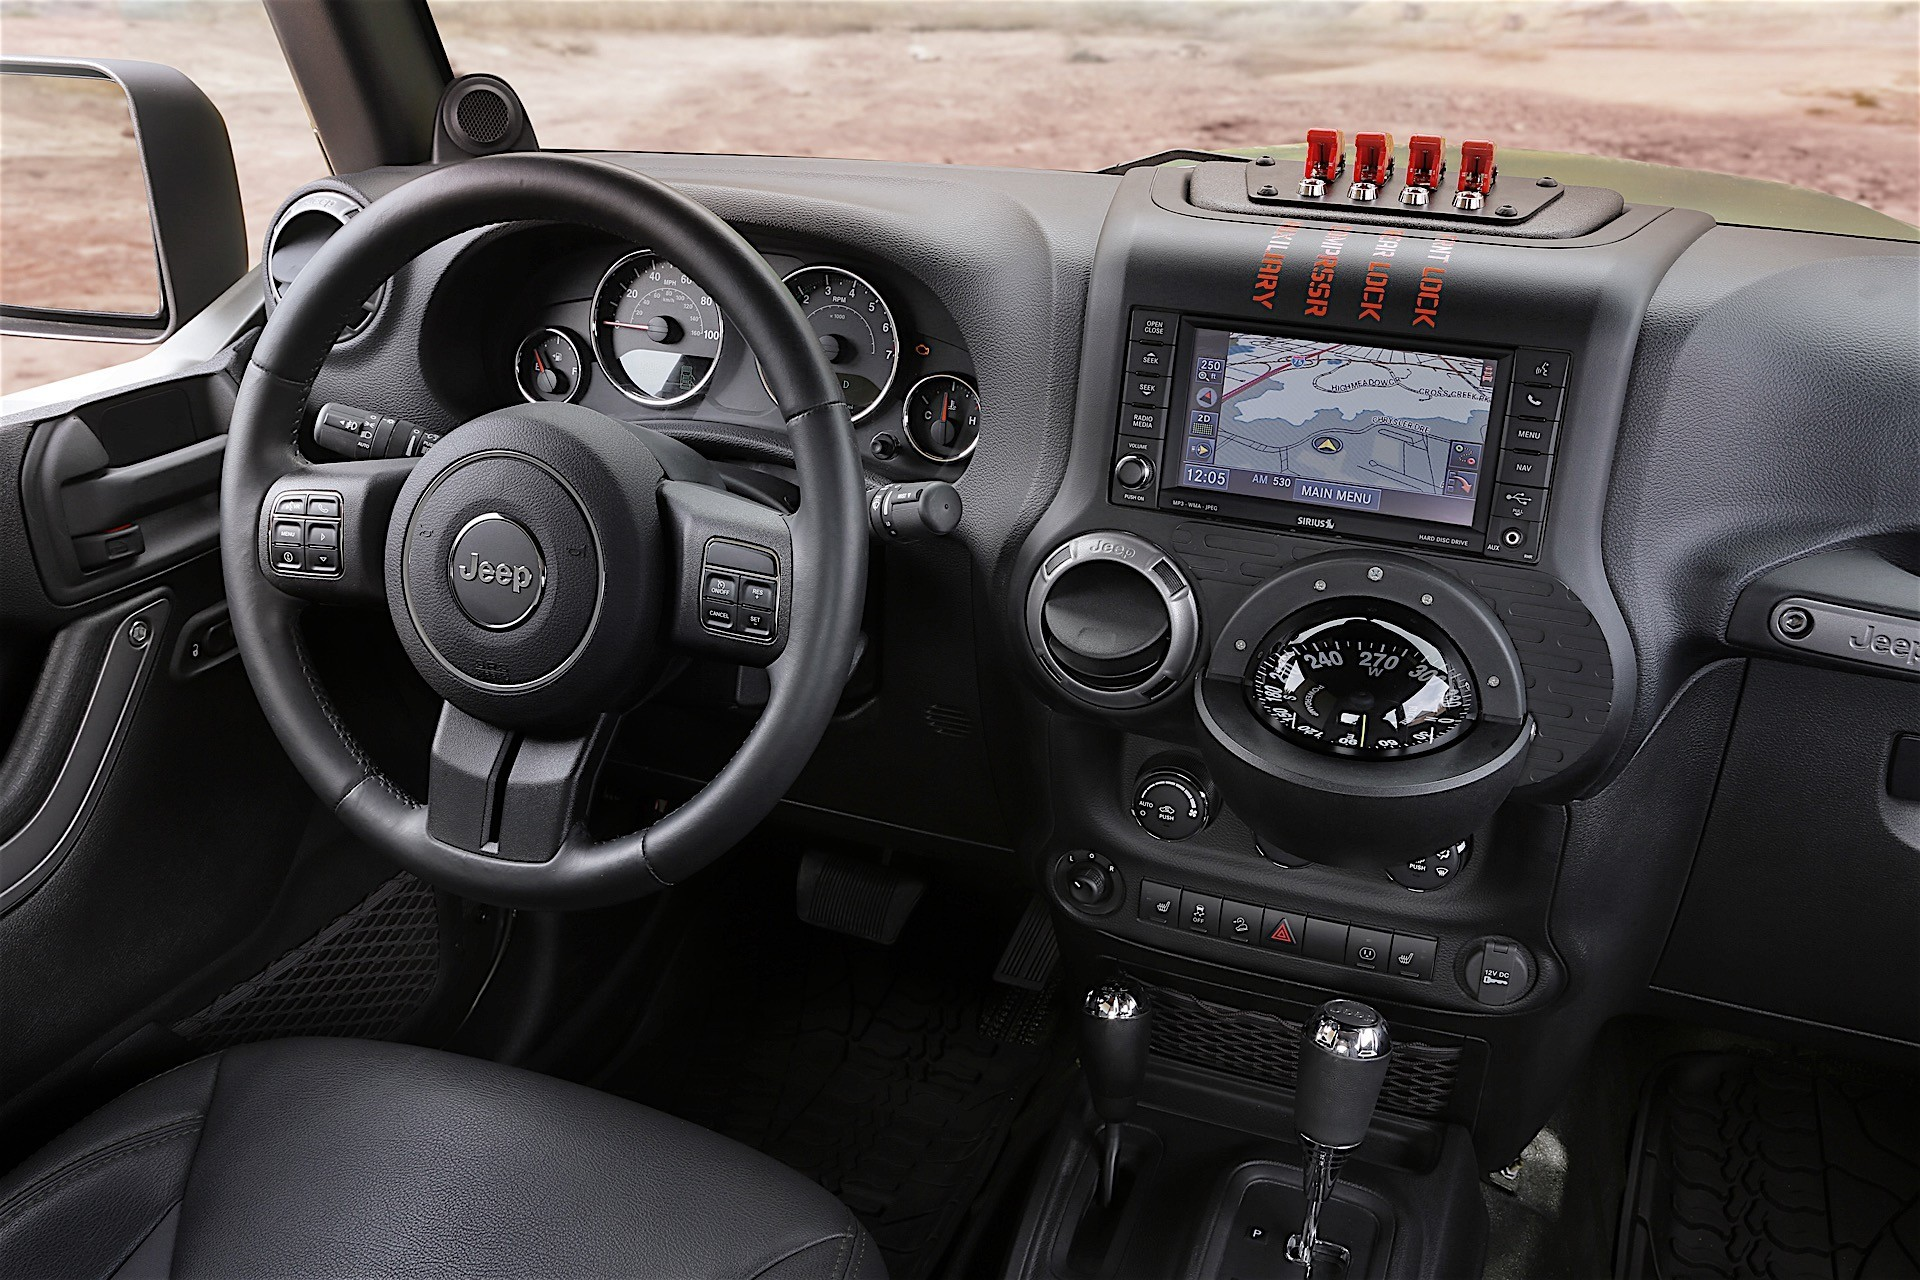 2018 Jeep Wrangler Confirmed to Spawn Crew Cab Pickup Truck